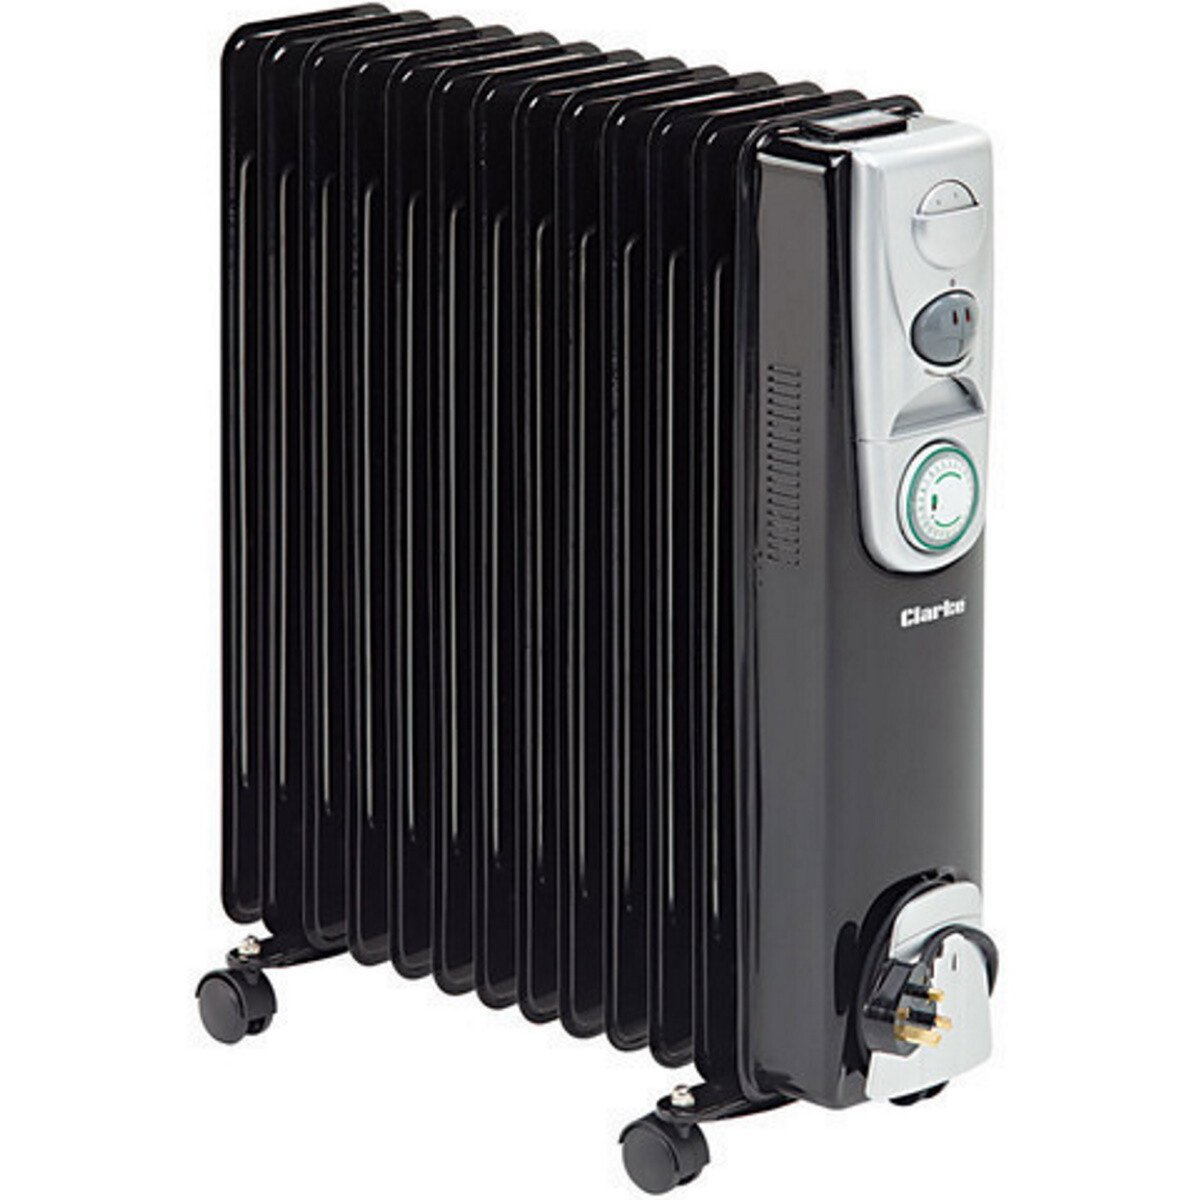 Clarke BR13 2.5kW 13 Fin Black Oil Filled Radiator 6934011